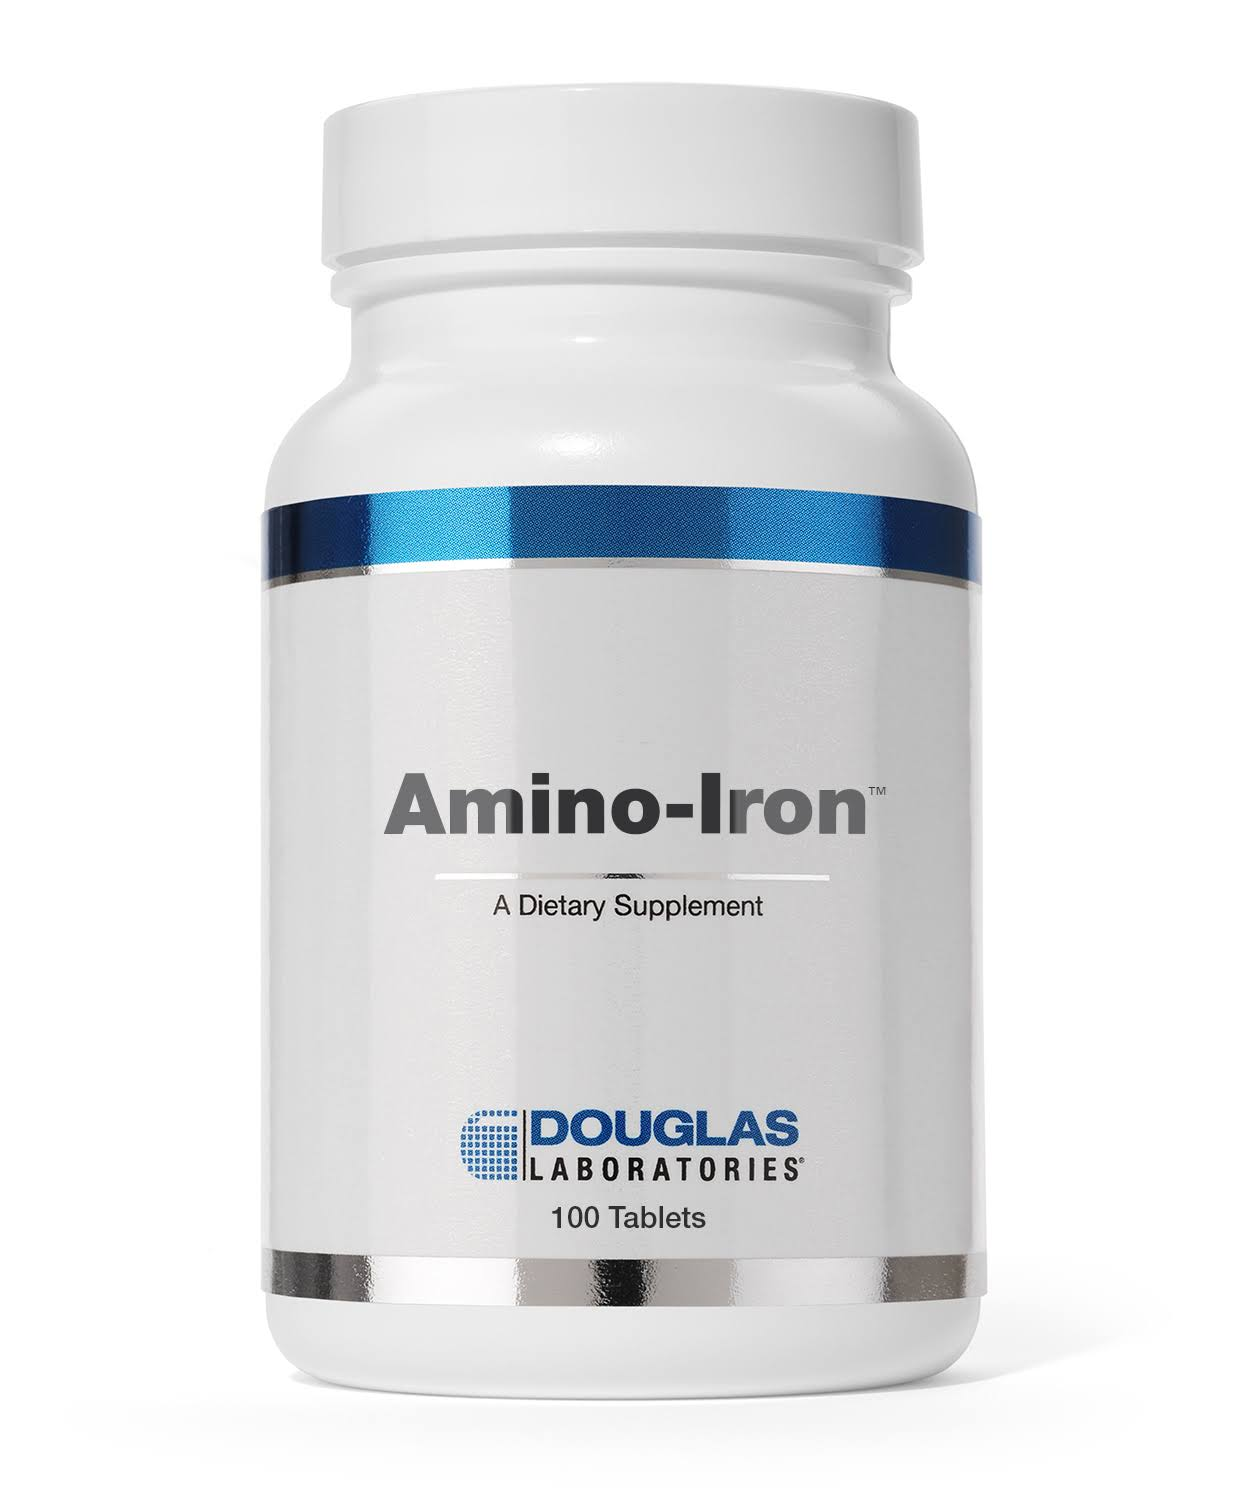 Douglas Laboratories Amino-Iron - 100ct